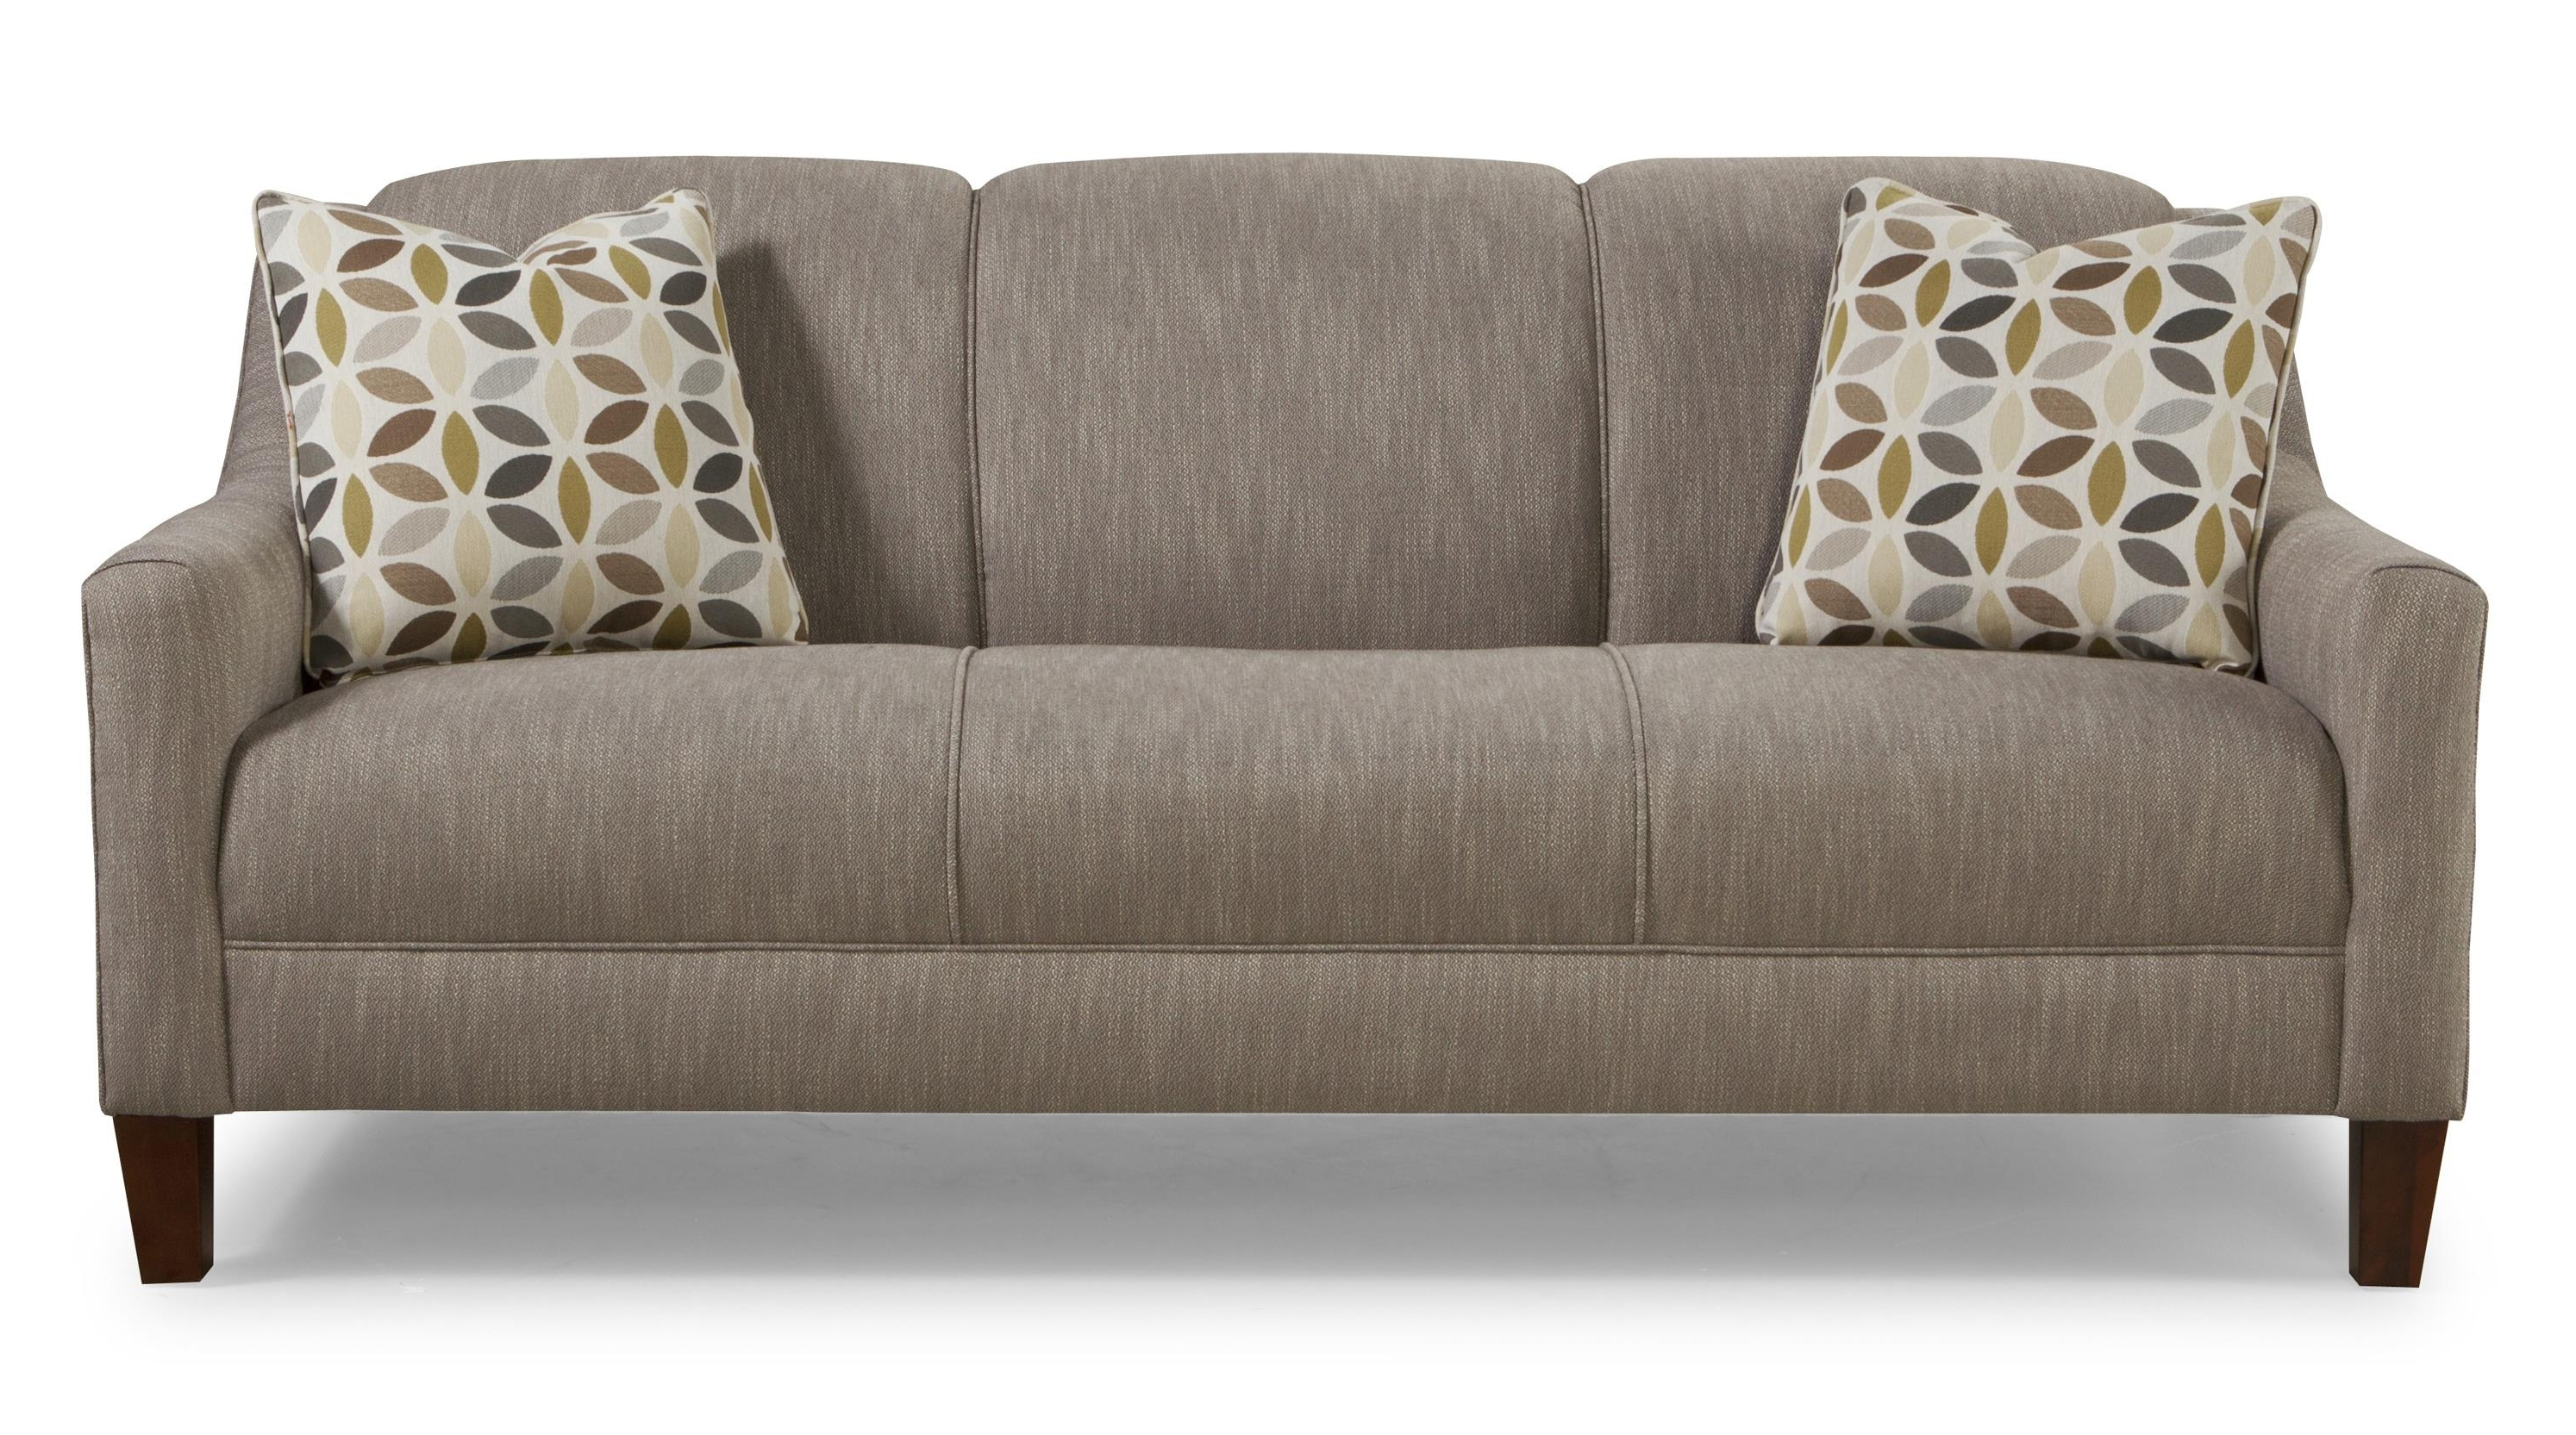 Sofa: Stylish Apartment Size Sofas Small Sectionals, Sofas Under Regarding Widely Used Apartment Sofas (View 11 of 15)